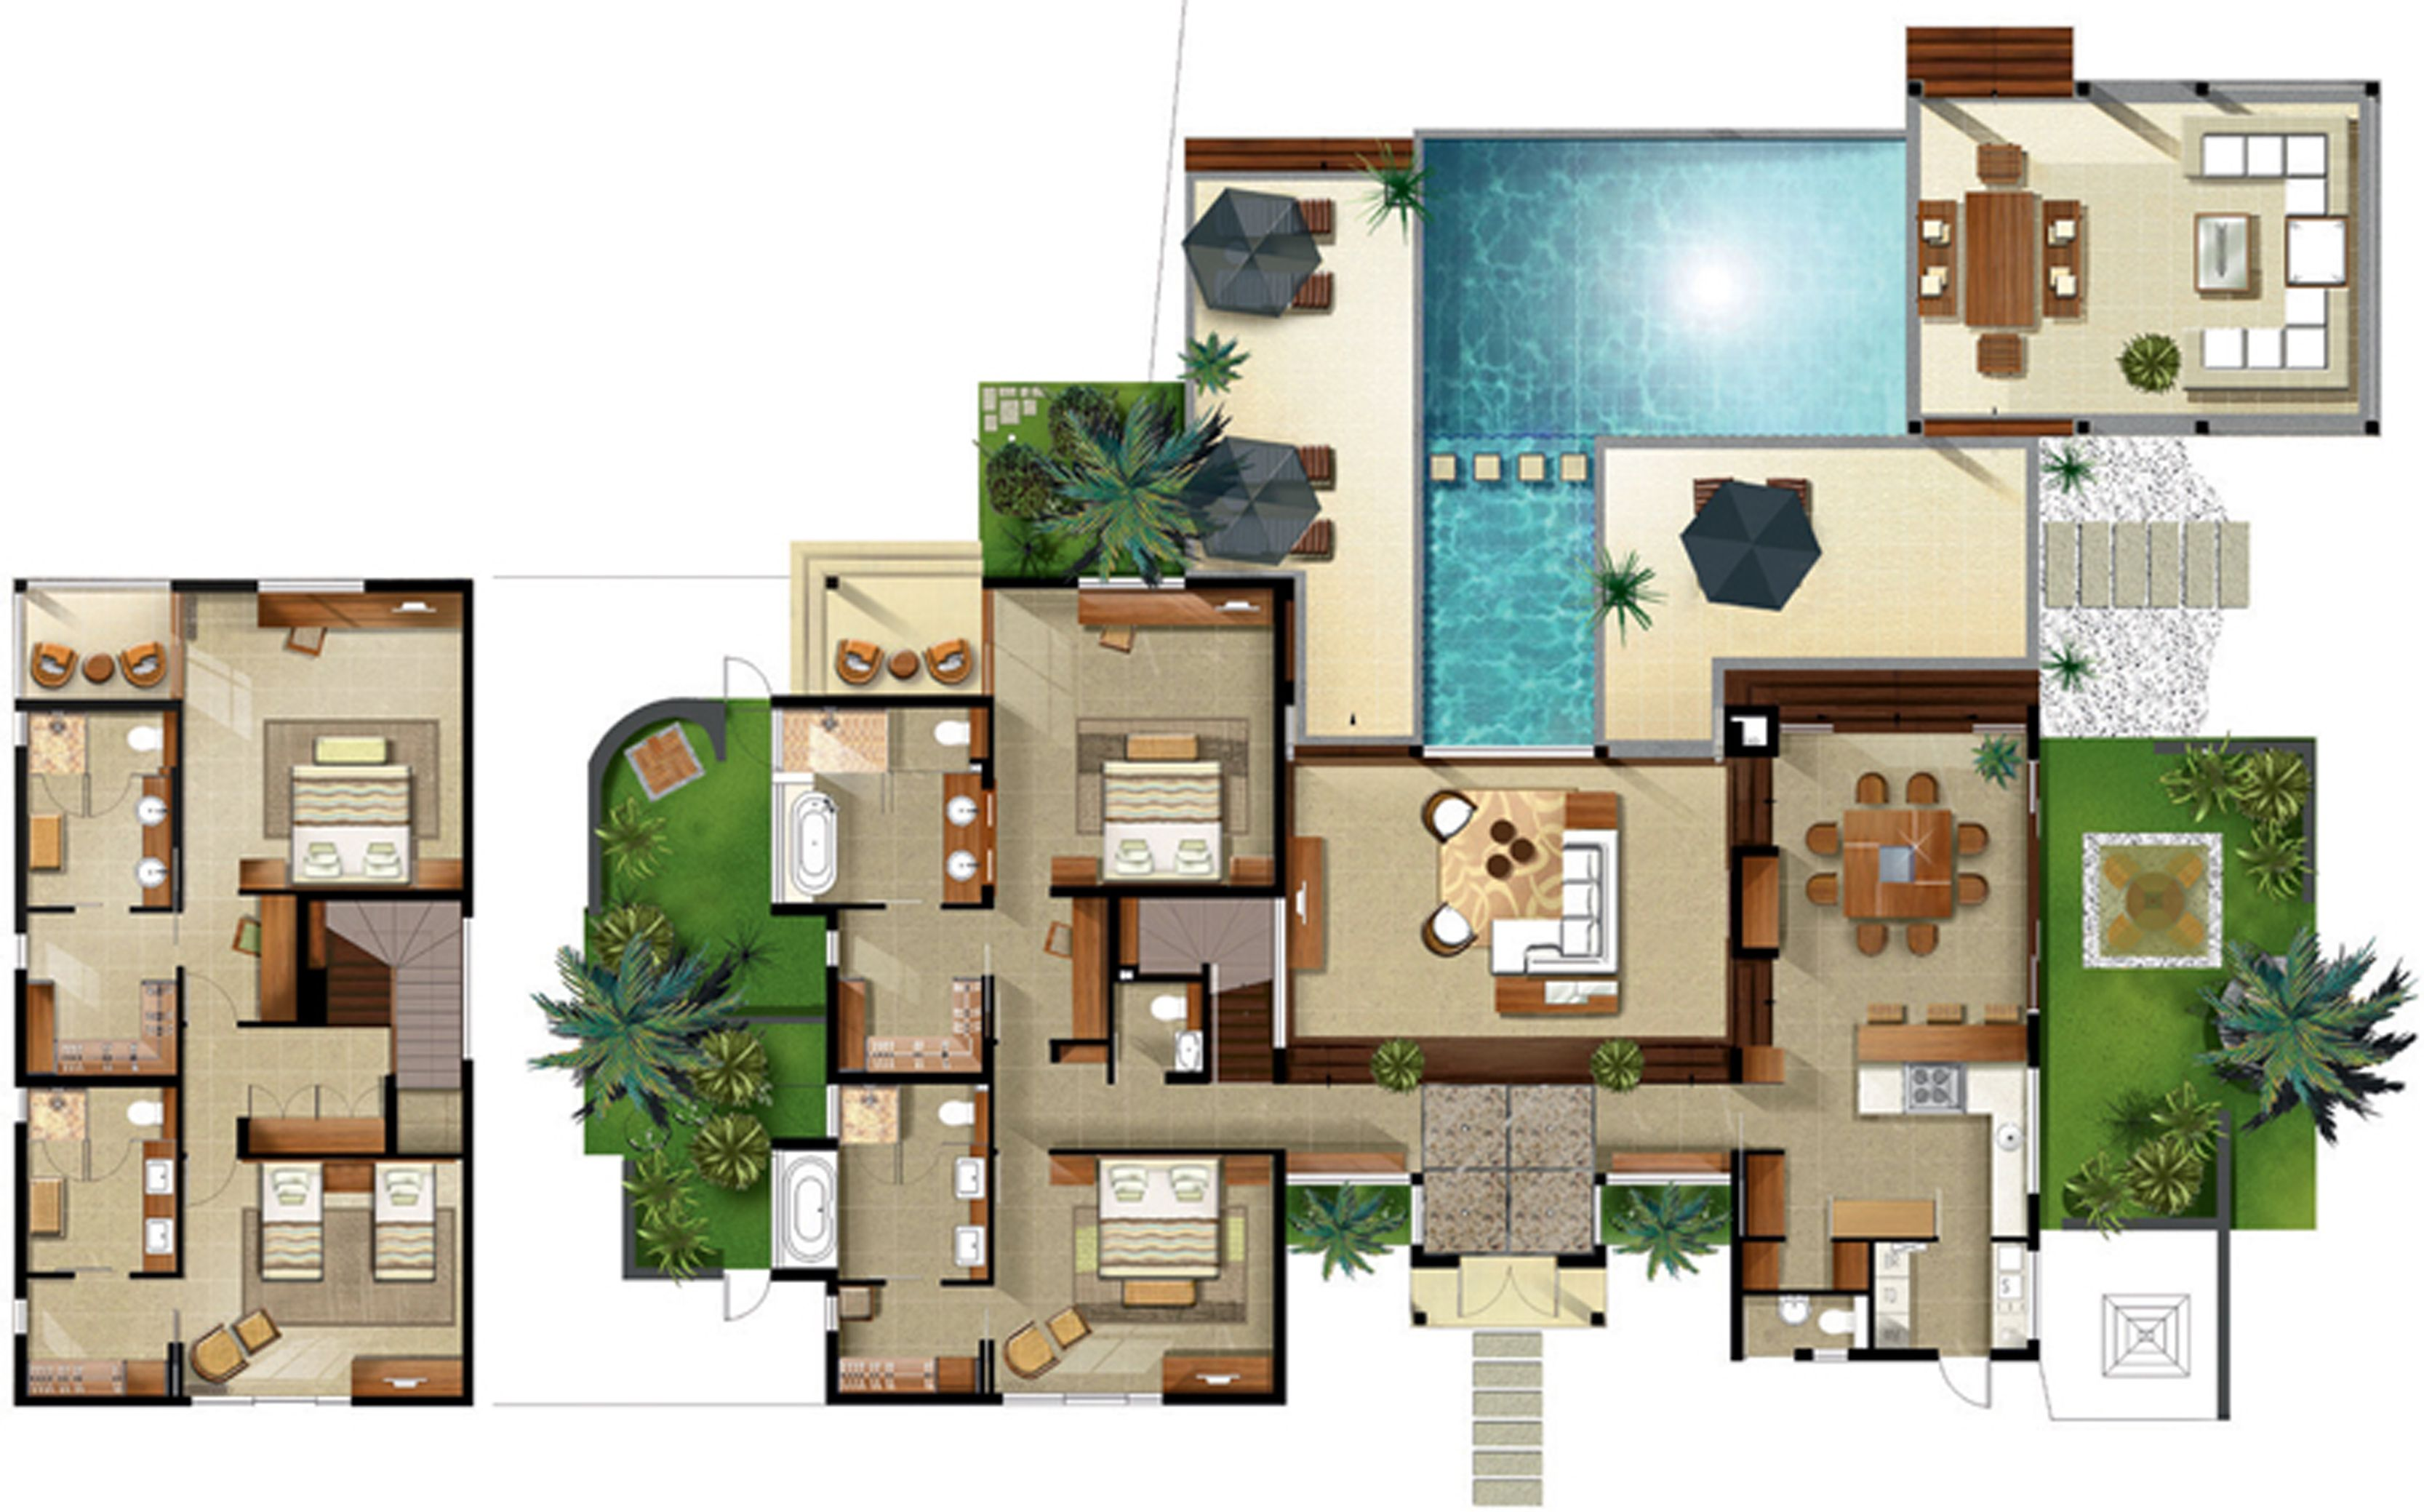 Disney beach club villas floor plan resort villa floor Plans for villas